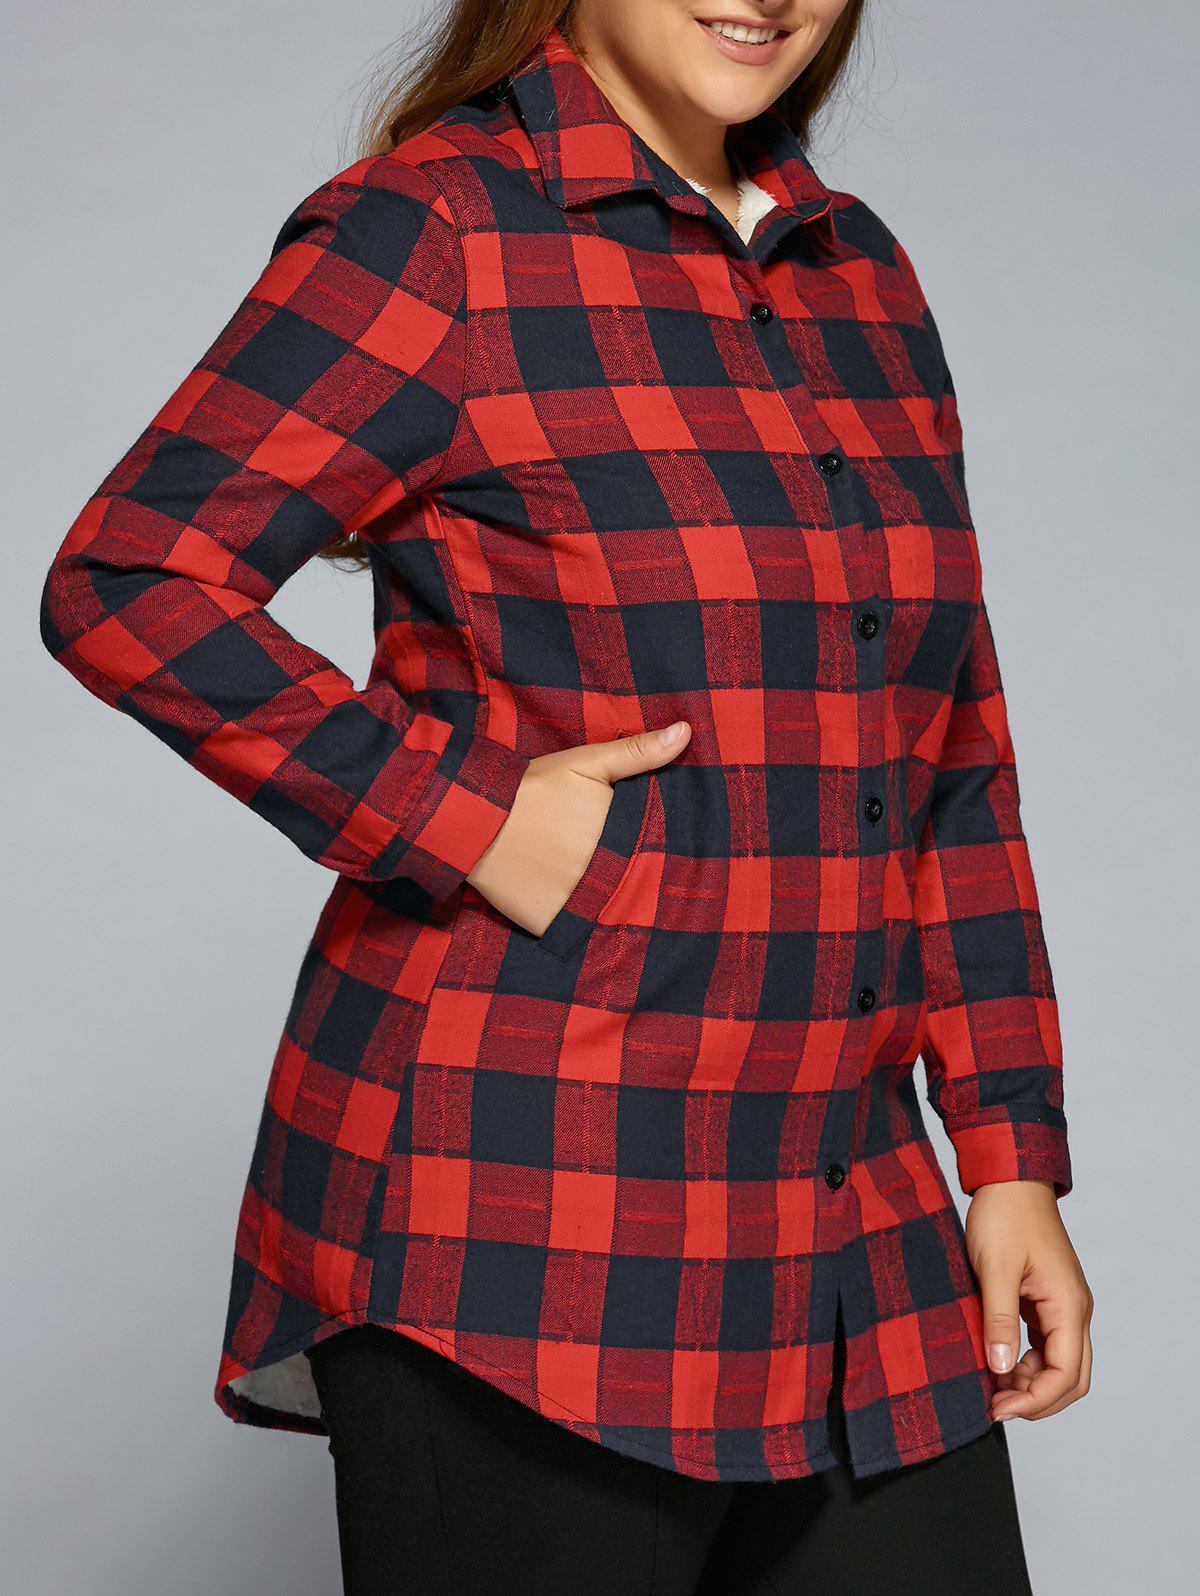 2018 plus size fleece flannel plaid shirt red xl in t for Plus size plaid flannel shirt